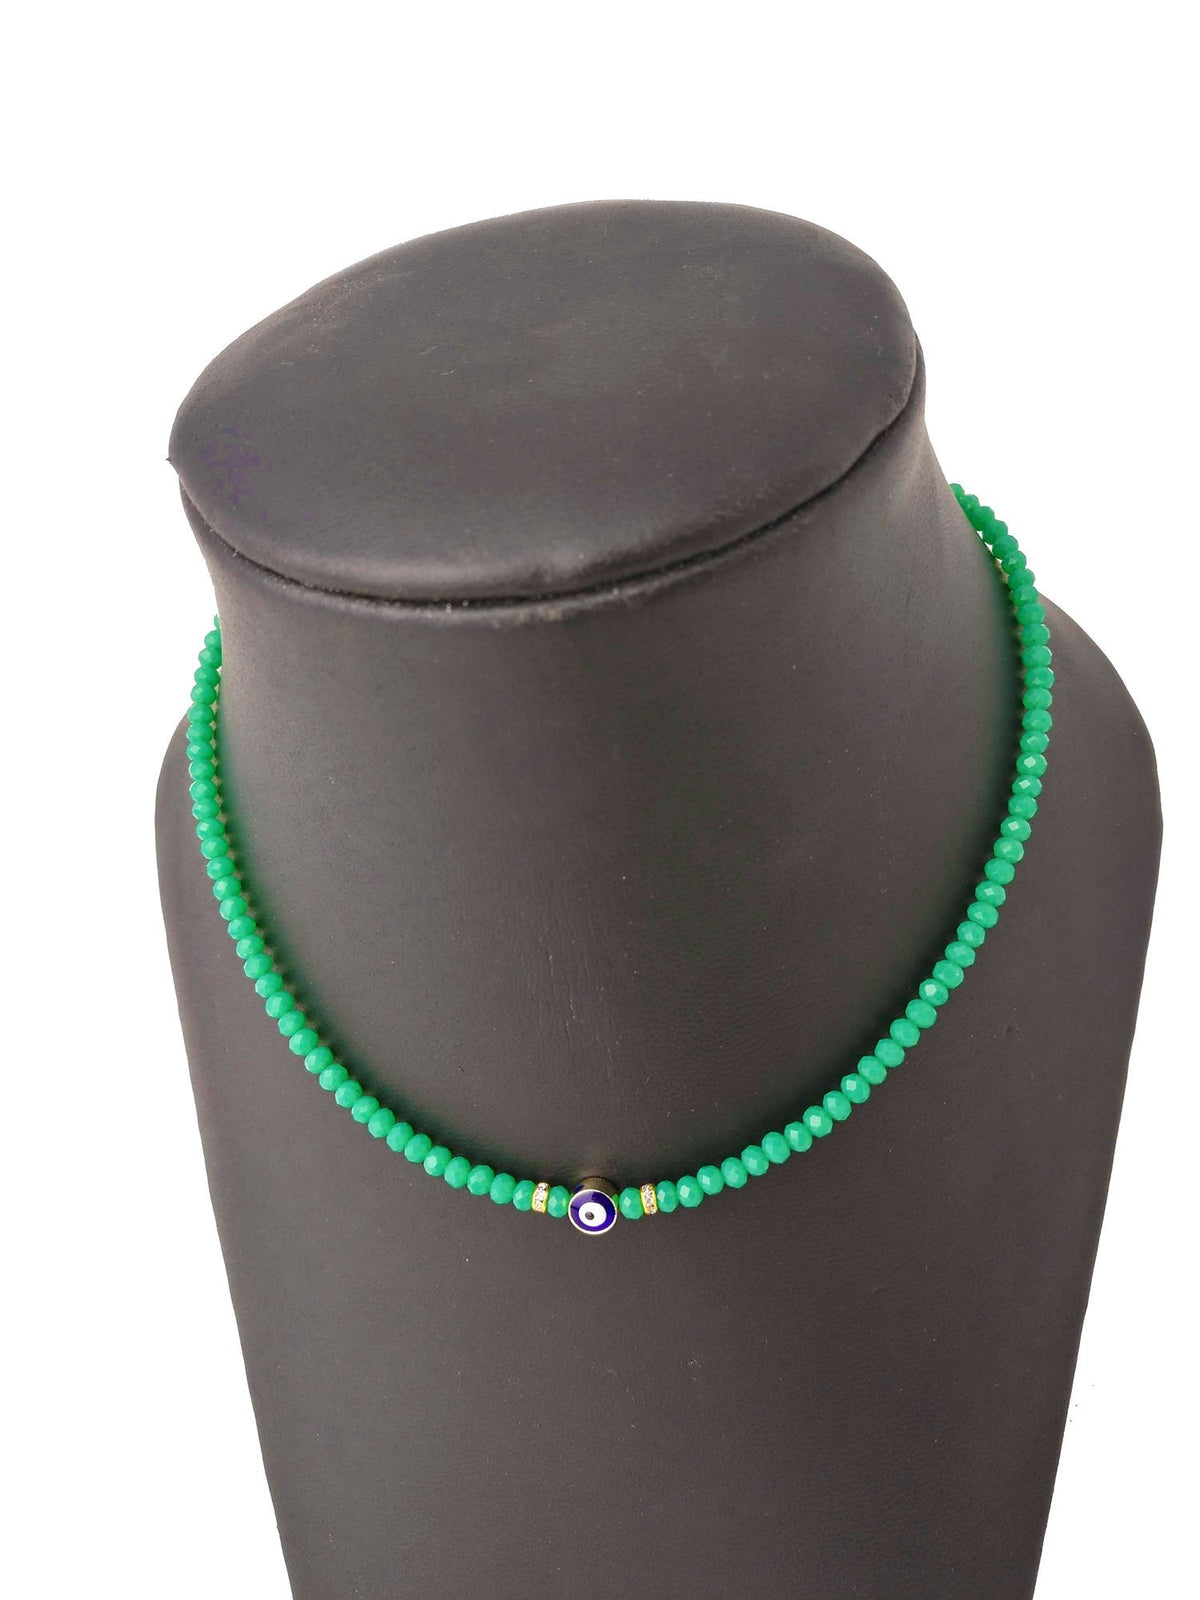 Beaded Evil Eye Necklace - Summer Green